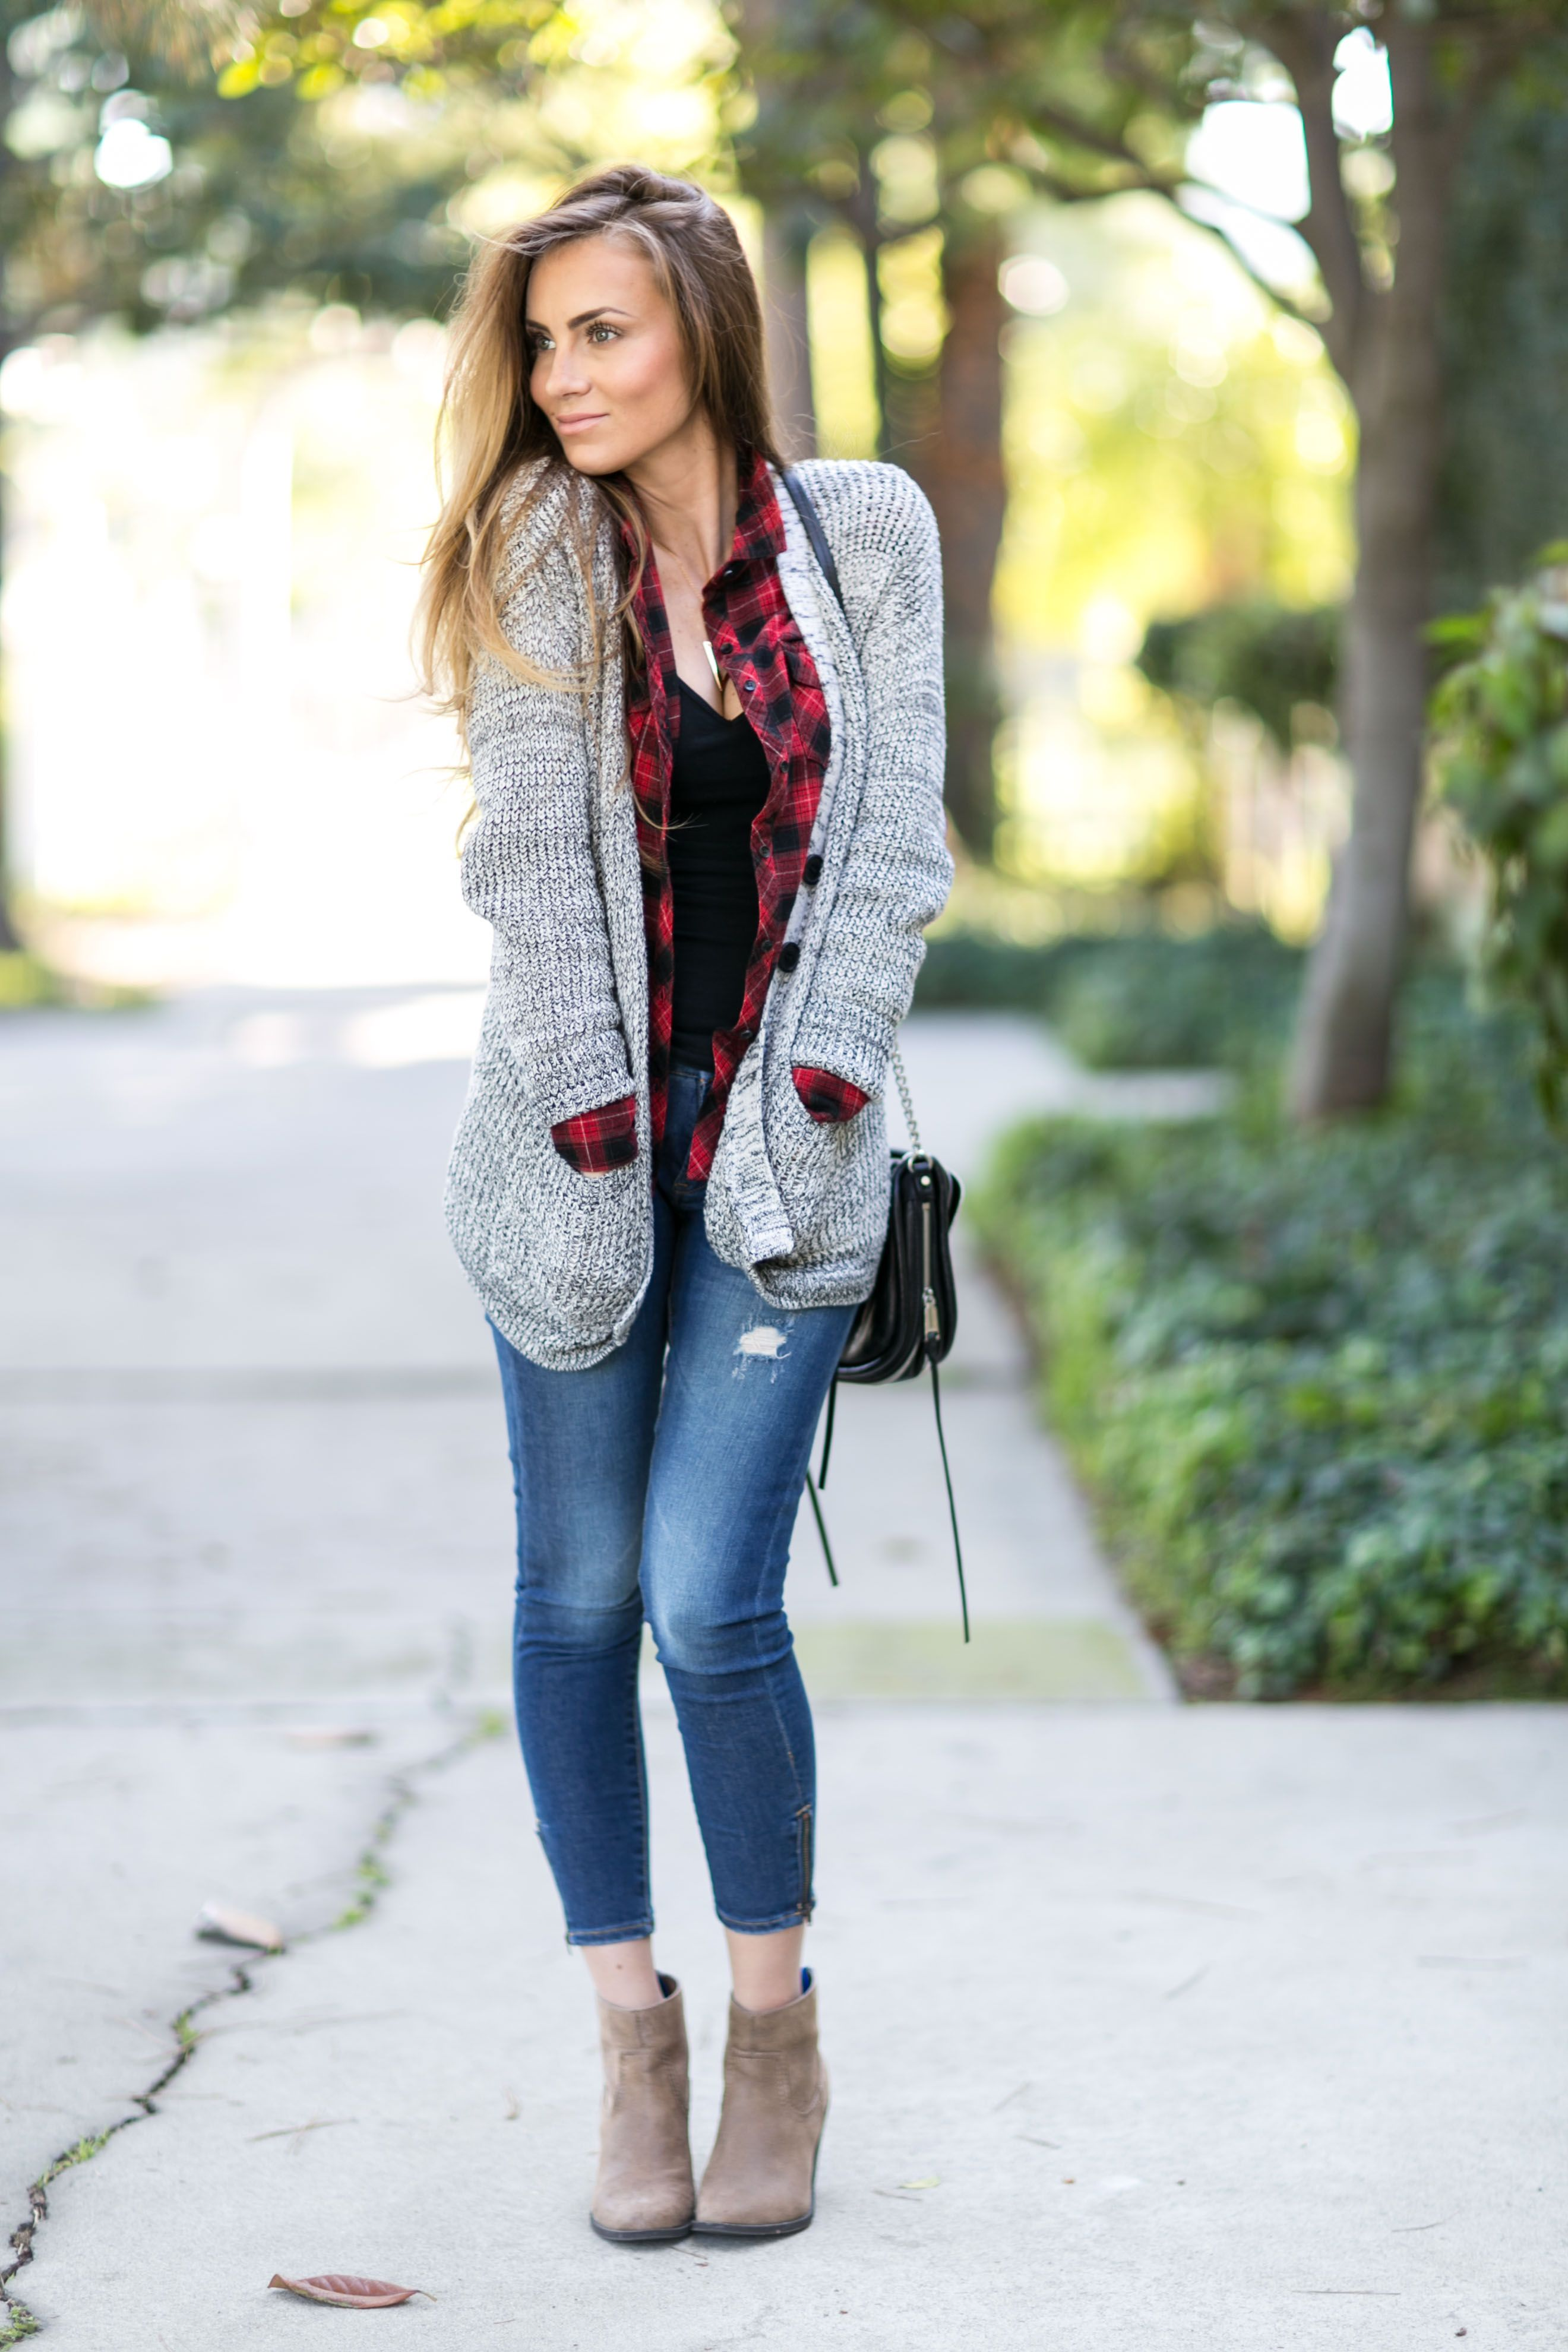 Red flannel and jeans   Fall Looks to Recreate  style  Pinterest  Tan booties Grey